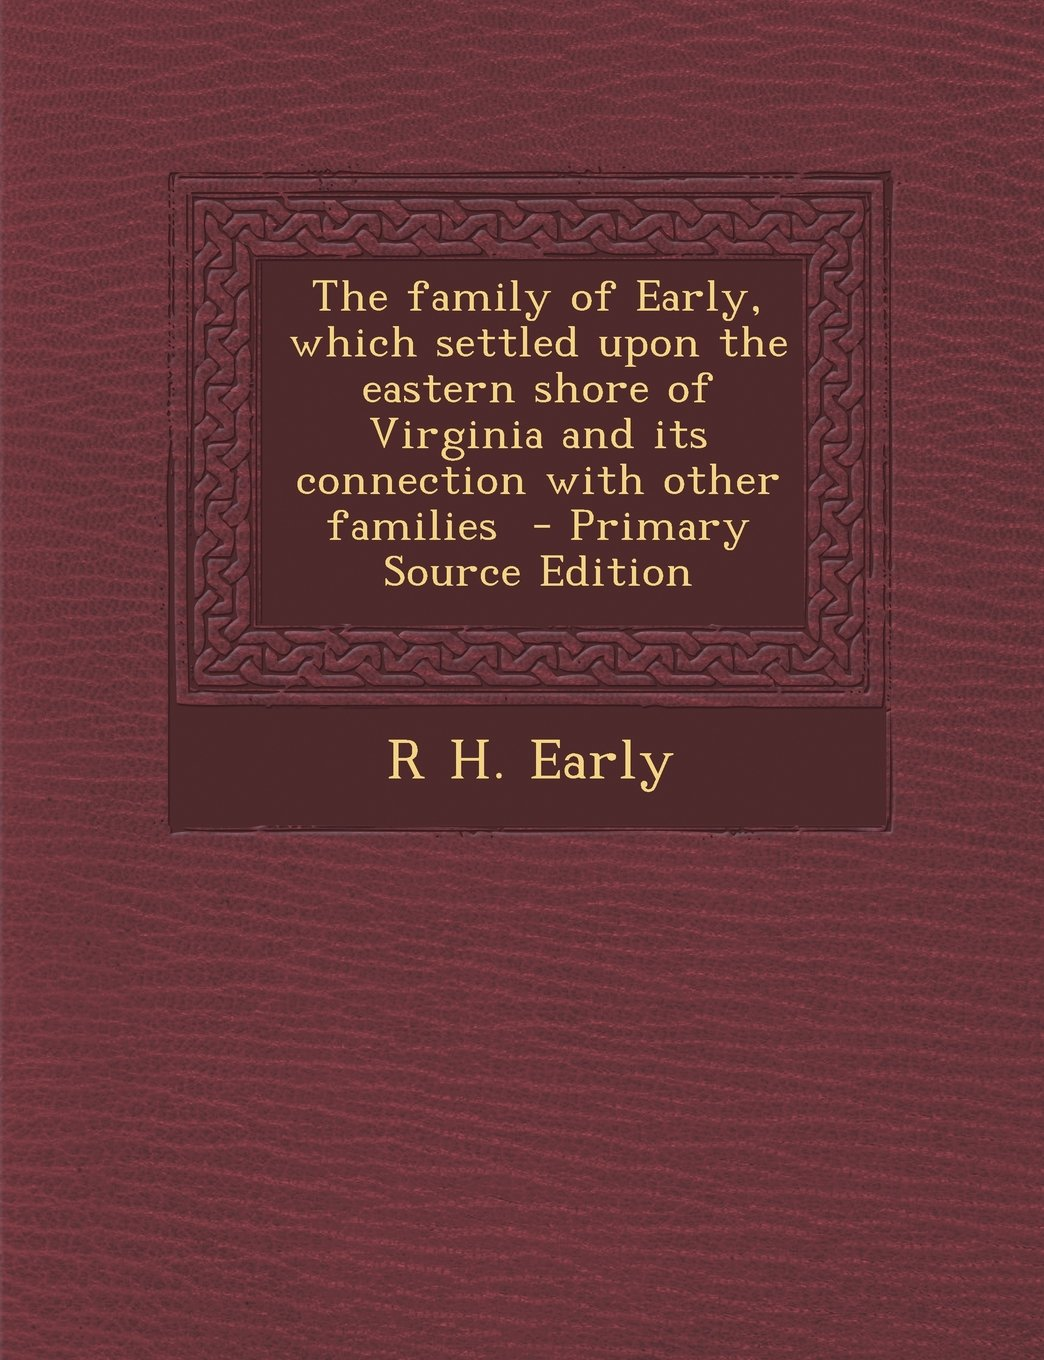 Download The family of Early, which settled upon the eastern shore of Virginia and its connection with other families PDF